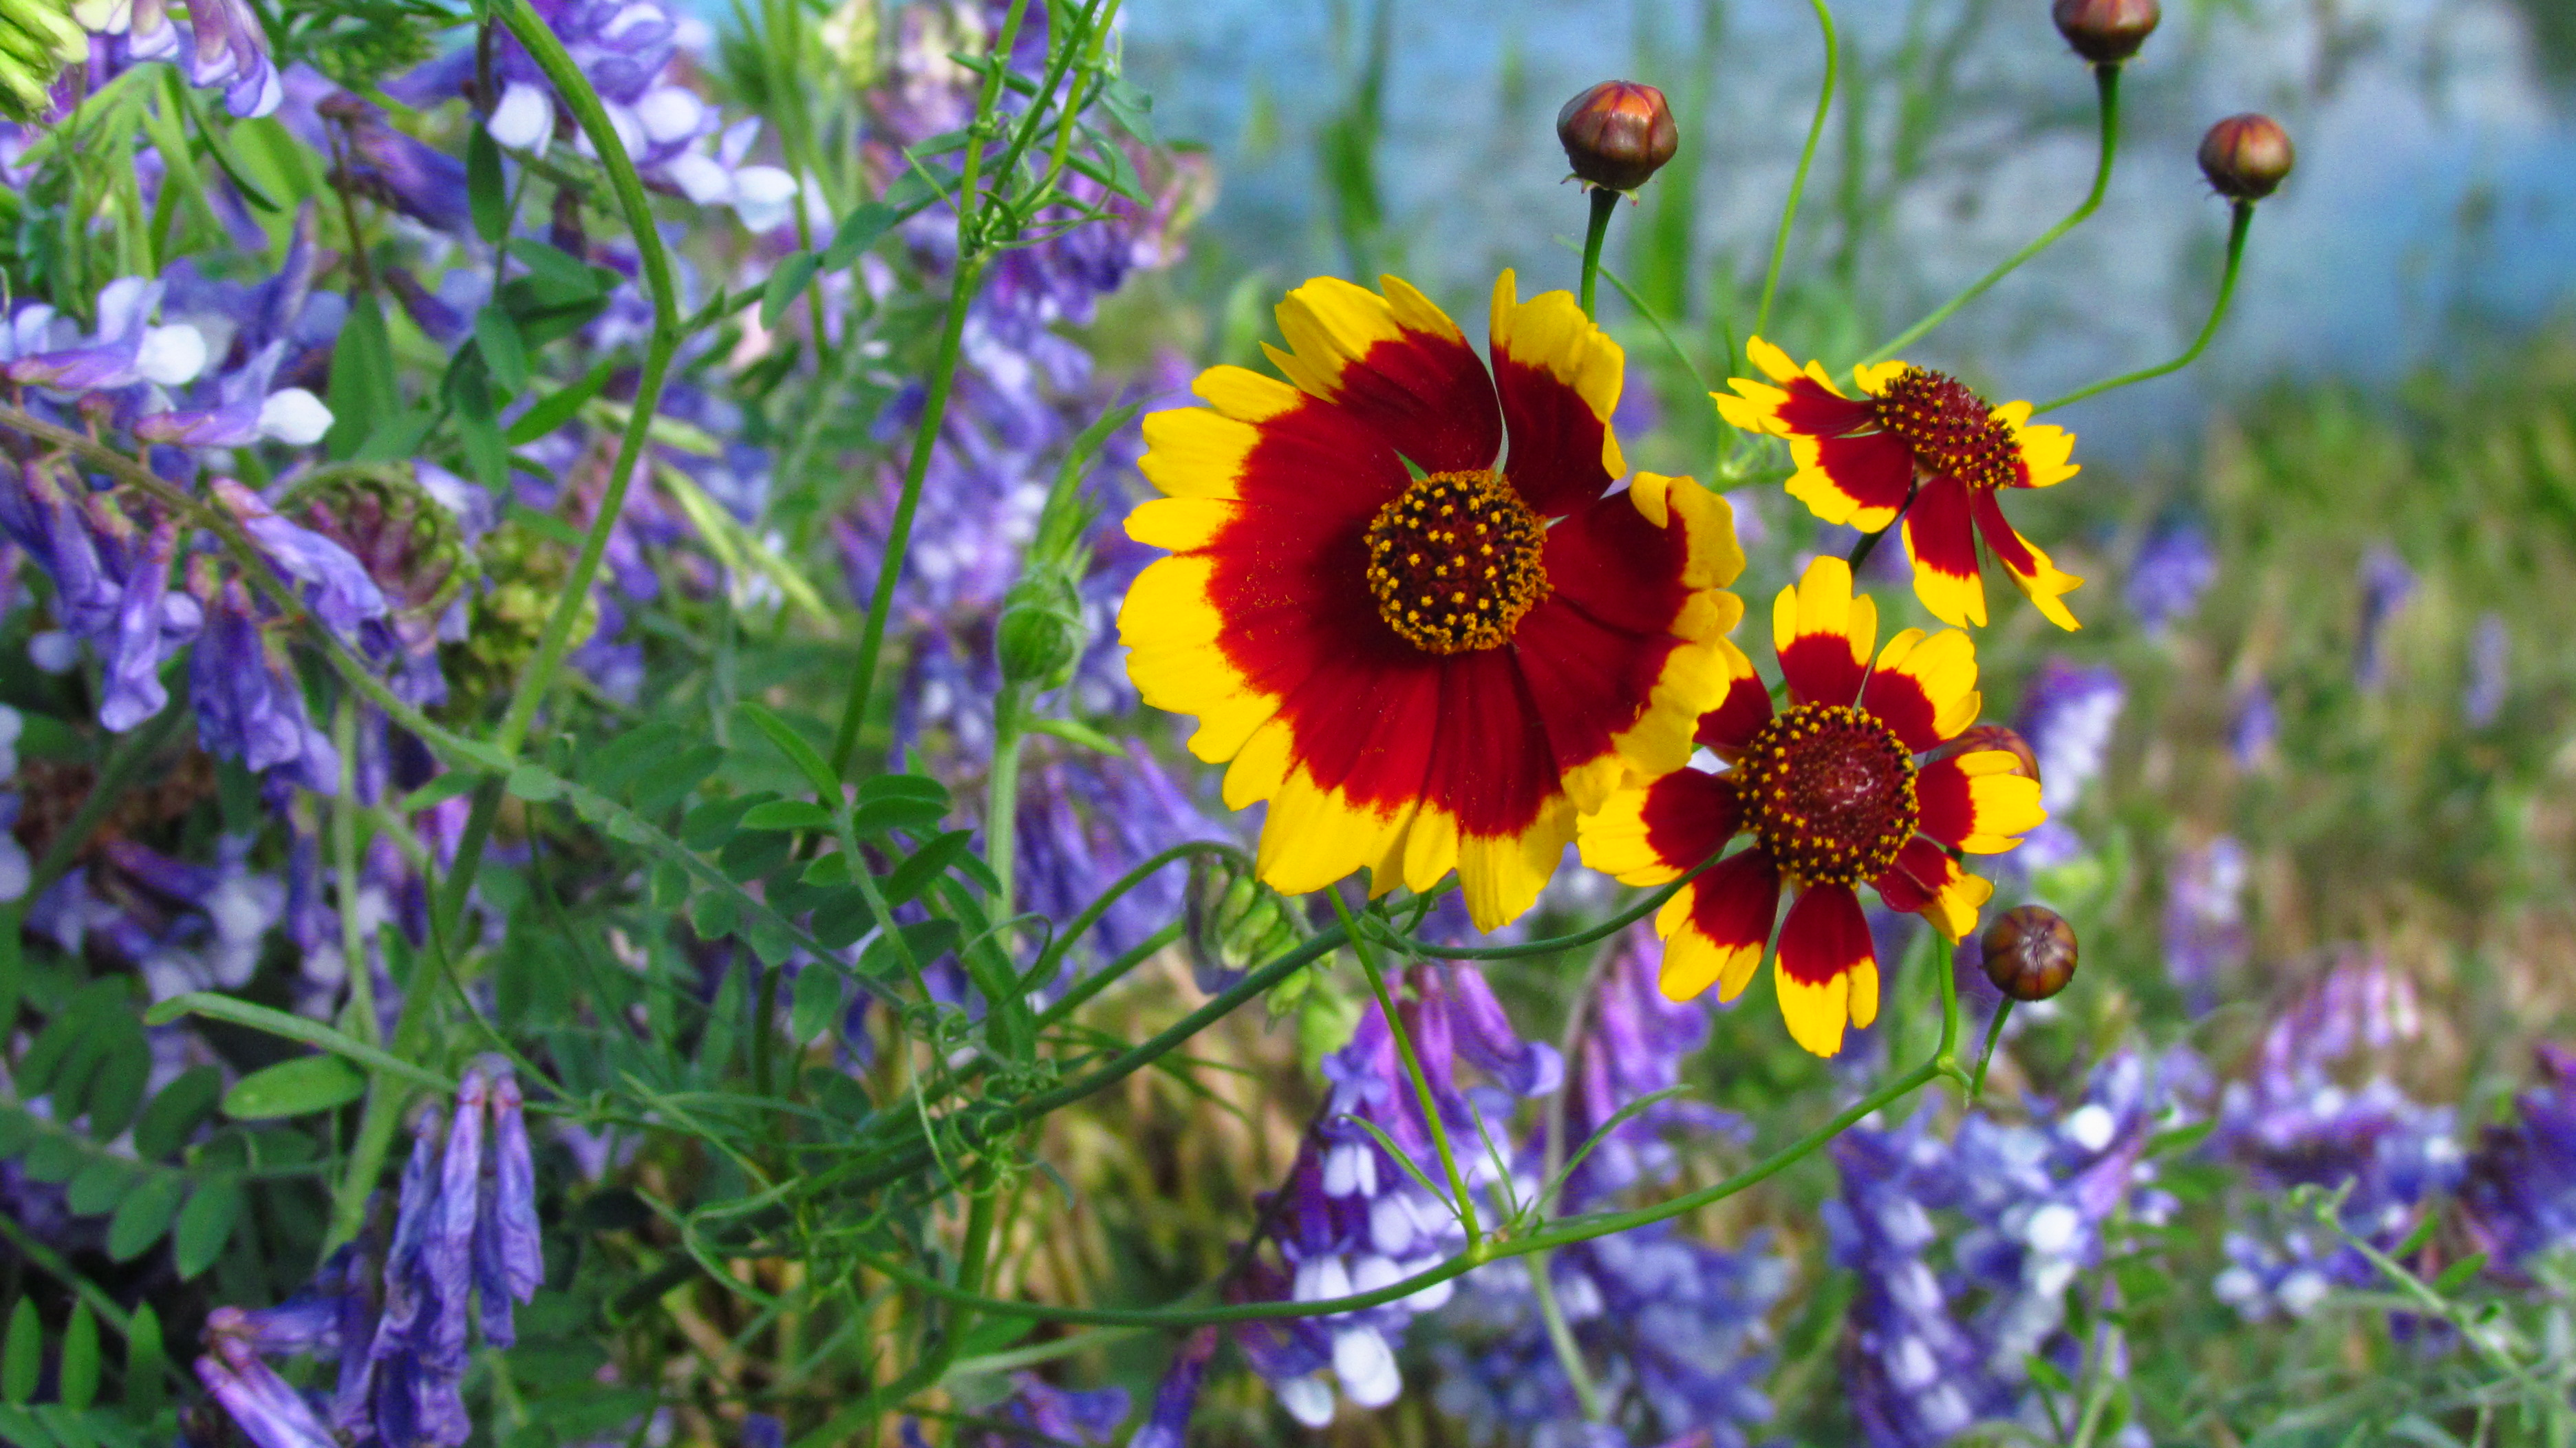 hd wildflowers wallpaper full hd pictures